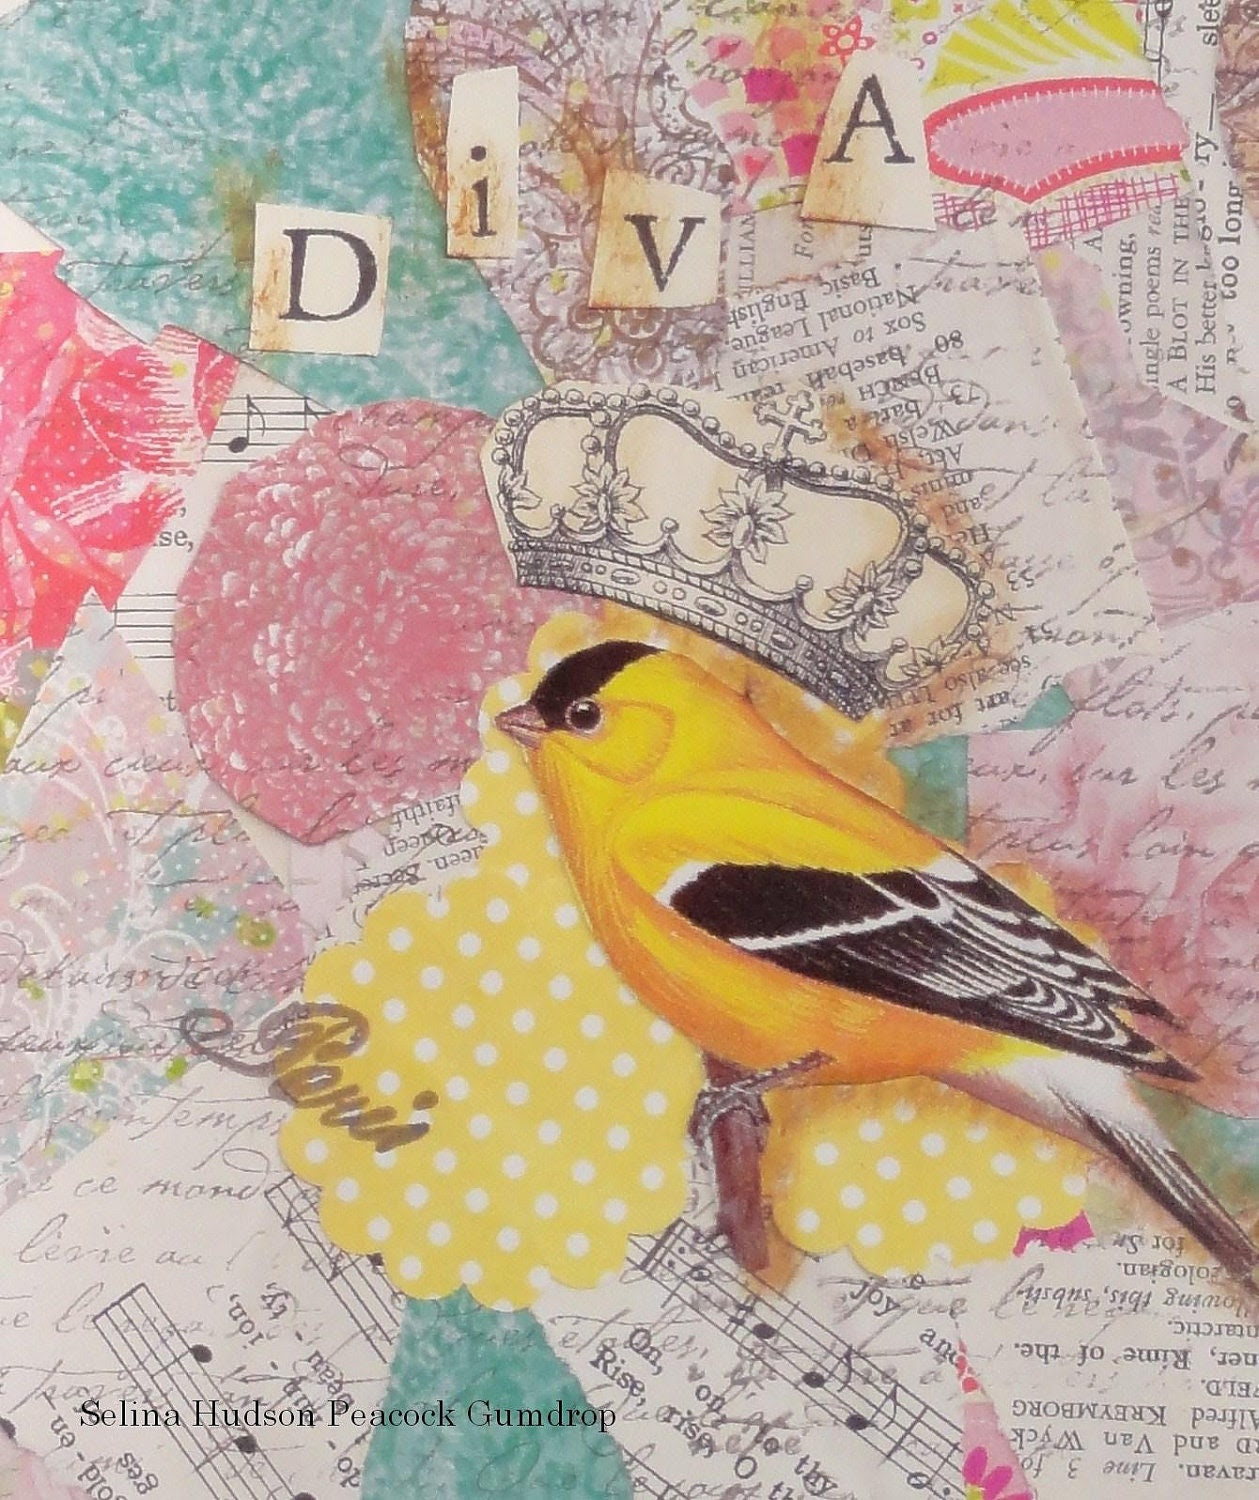 DIVA yellow bird collage digital prin t- printable uprint words vintage style paper old pdf 8 x 10 frame saying